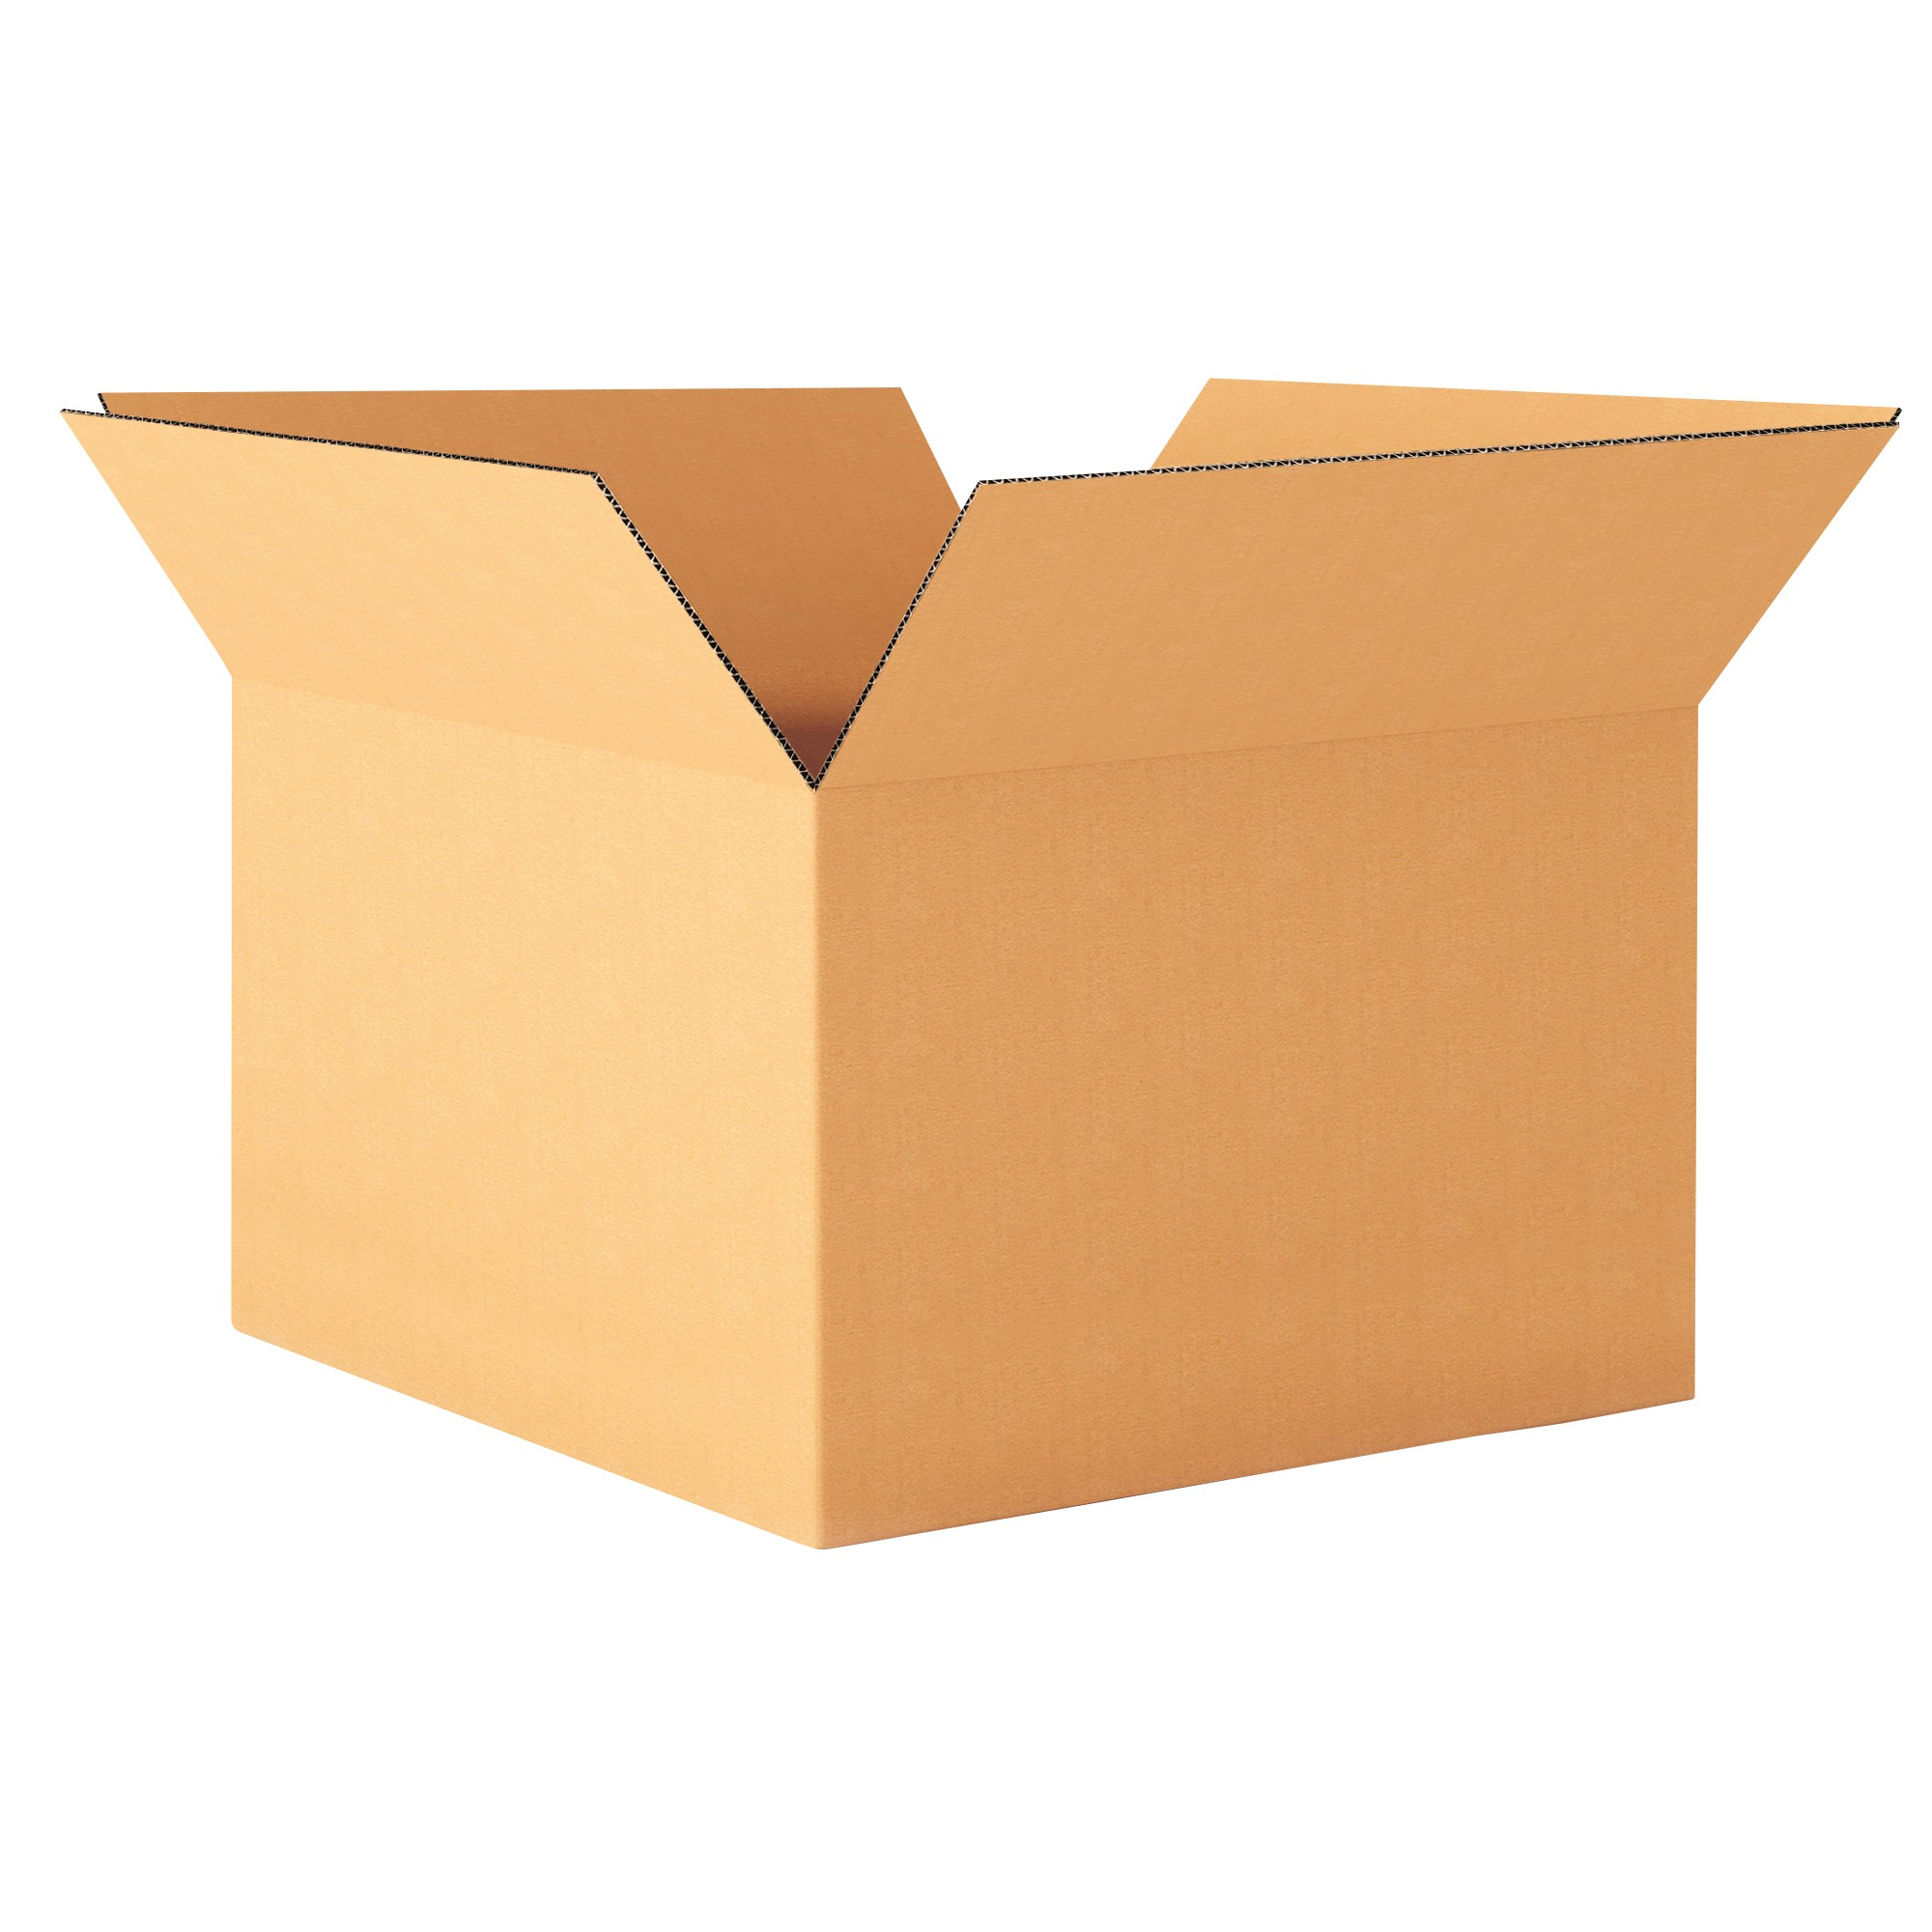 "TOTALPACK® 12 x 10 x 8"" Single Wall Corrugated Boxes 25 Units"